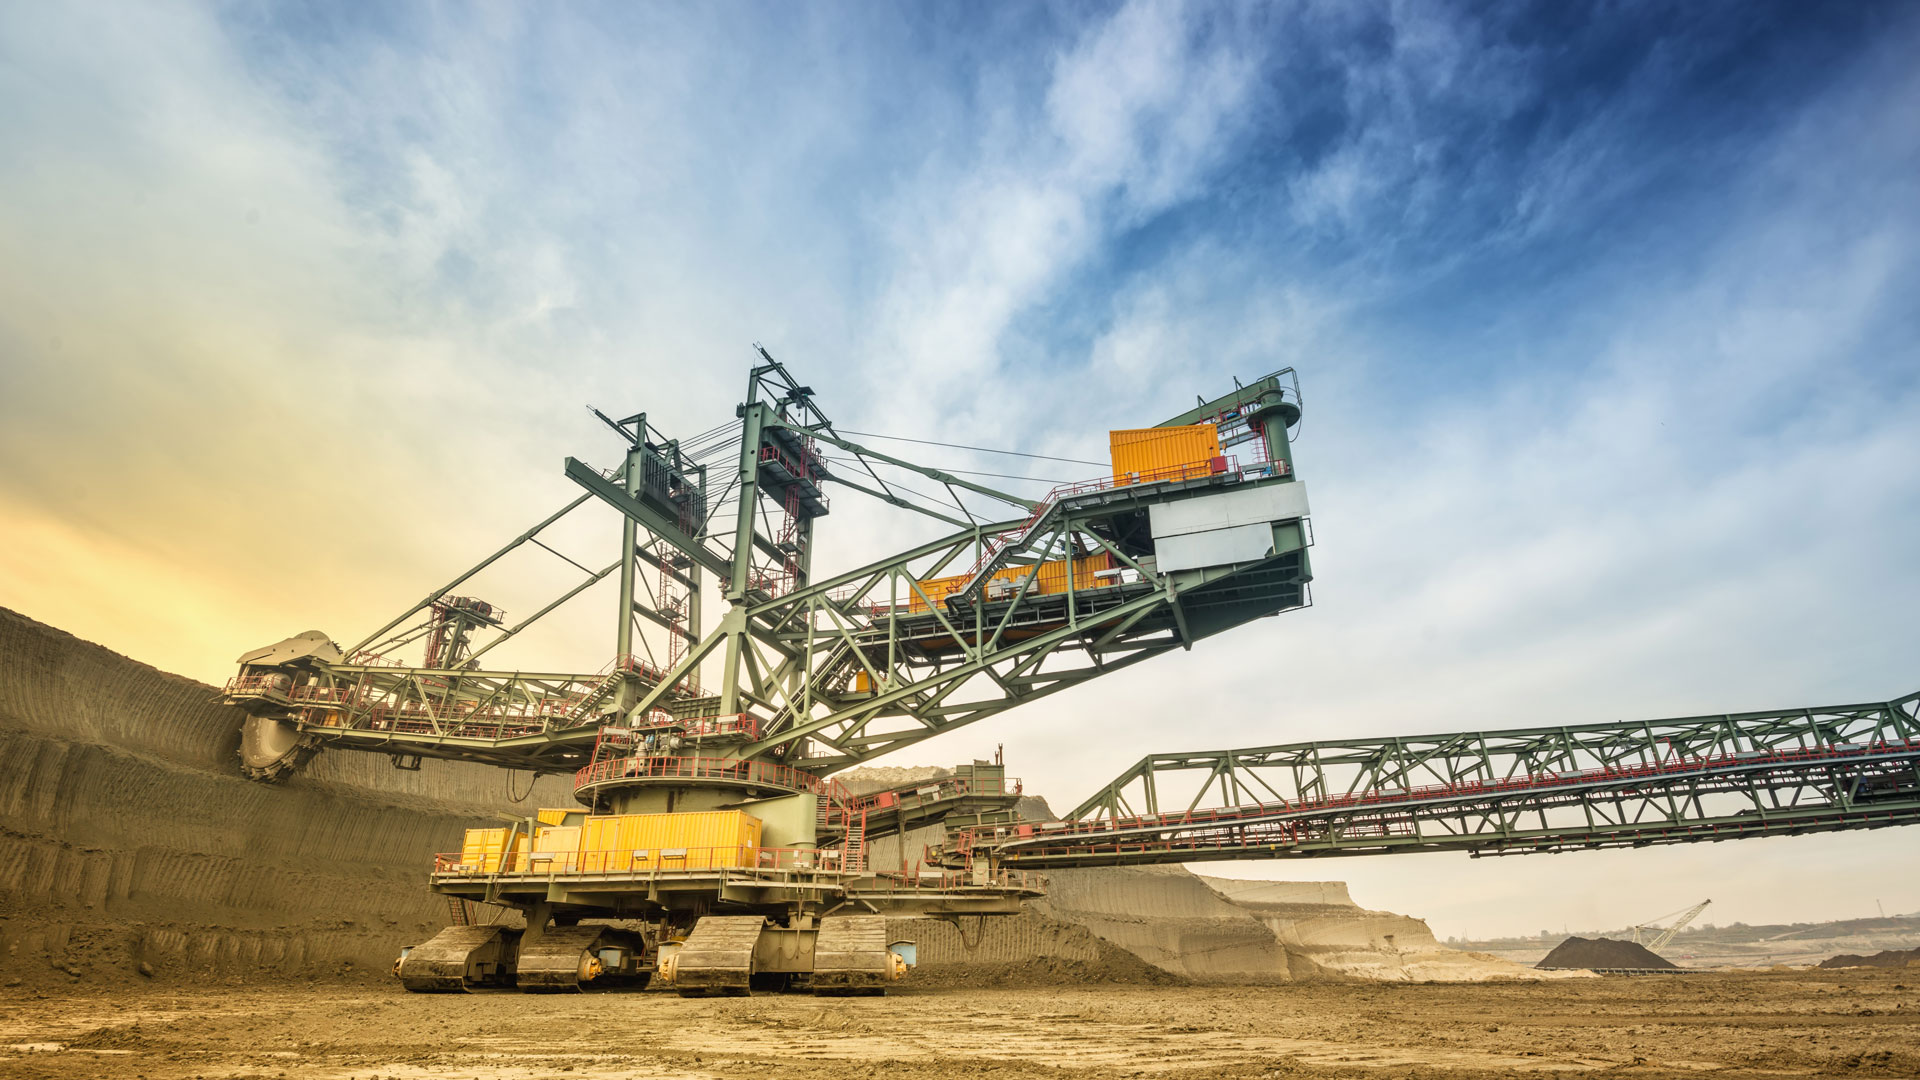 Weather solutions for the mining extraction sectors metraweather powerful weather intelligence - Mining images hd ...